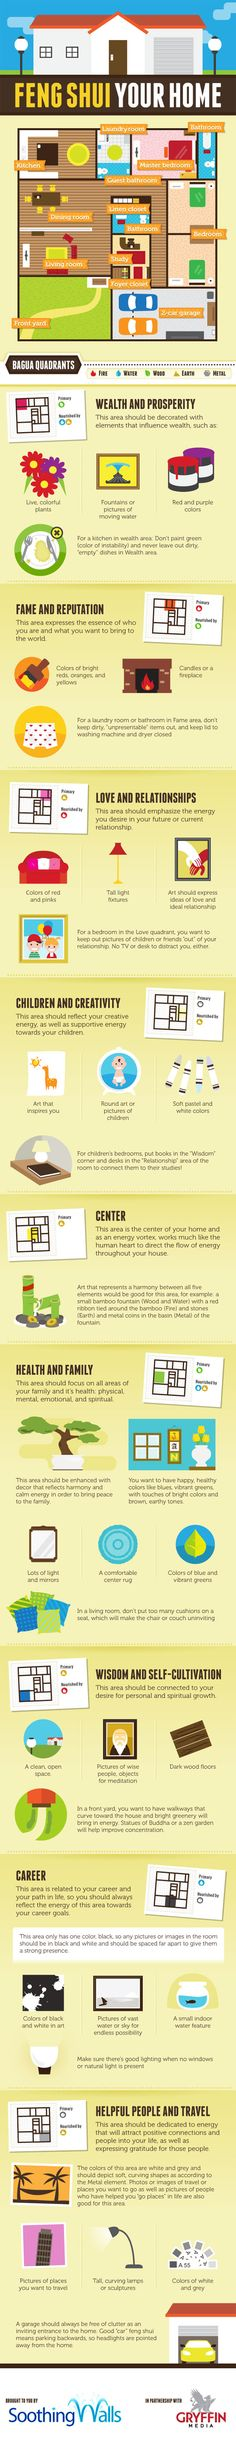 Feng Shui, infographic, green lifestyle, sustainable design, green interiors, green design, eco interiors, green decor, interior design, Soothing Walls, Gryffin Media